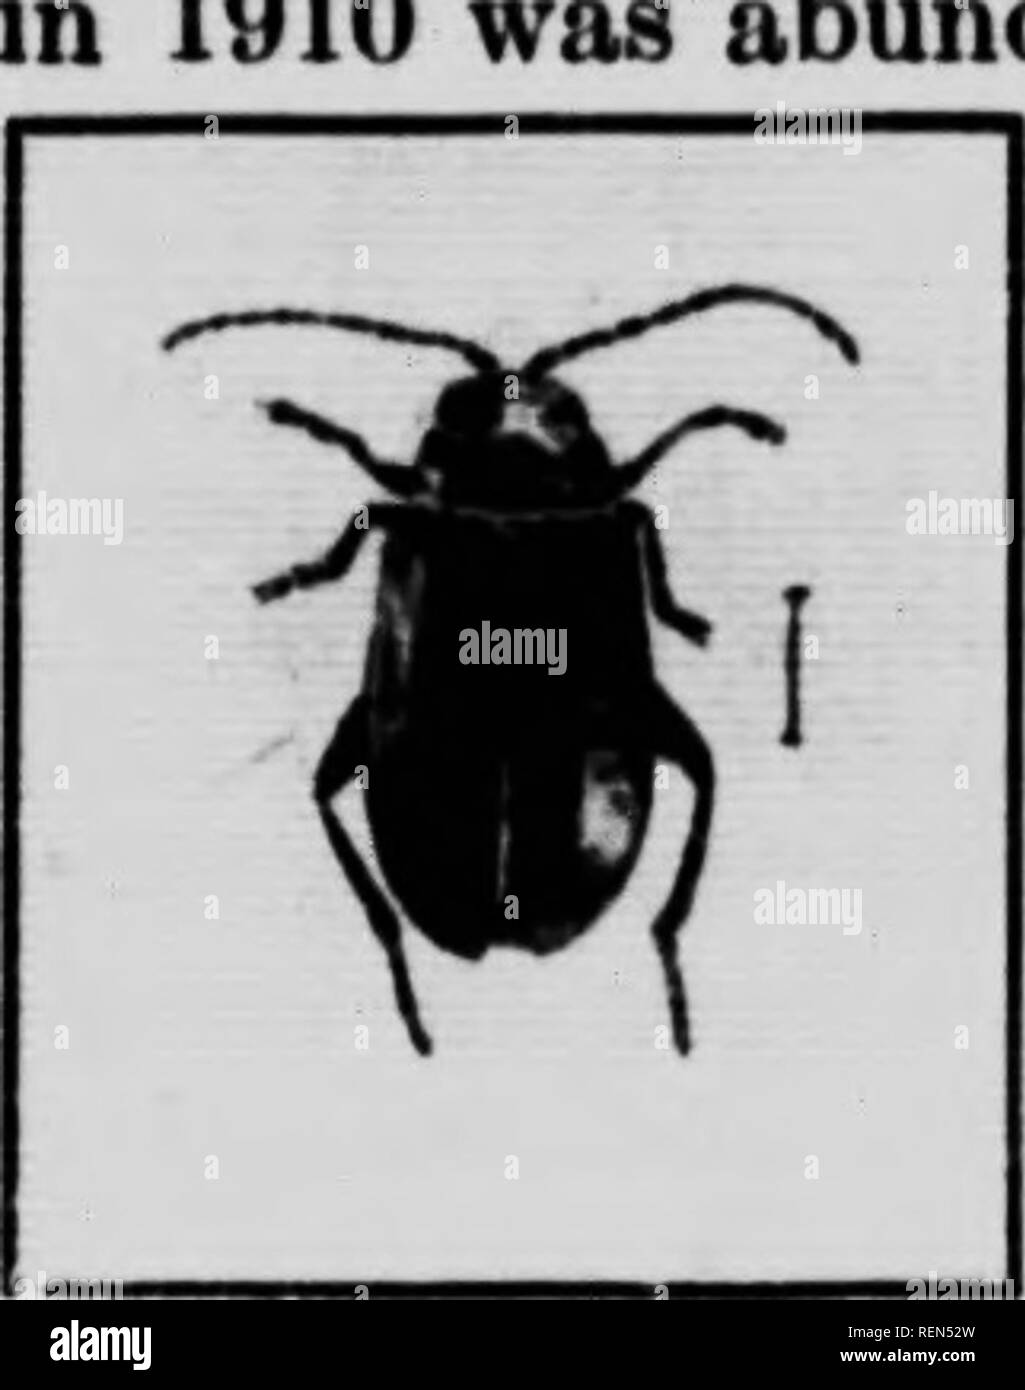 """. Flea-beetles and their control [microform]. Coléoptères, Lutte contre les; Altises, Lutte contre les; Flea beetles; Insectes nuisibles, Lutte contre les; Beetles; Insect pests. 8 1910 was abund-. Fio. 7.—The lironie Flea-bcetlf, cnlarKcd 4 times; (original).  / -^^JB l^x ^M w )"""" i The Bron7E Flea-beetle, {HaUica evicta Lee.) This species of HaUica which occurred at Nelson, B.C ant on the leaves of strawberry, in the last week of April; 180 specimens were collected from a single plant. It is a larger flea-beetle than HaUica ignita, being about one- sixth of an inch in length and of a br - Stock Image"""